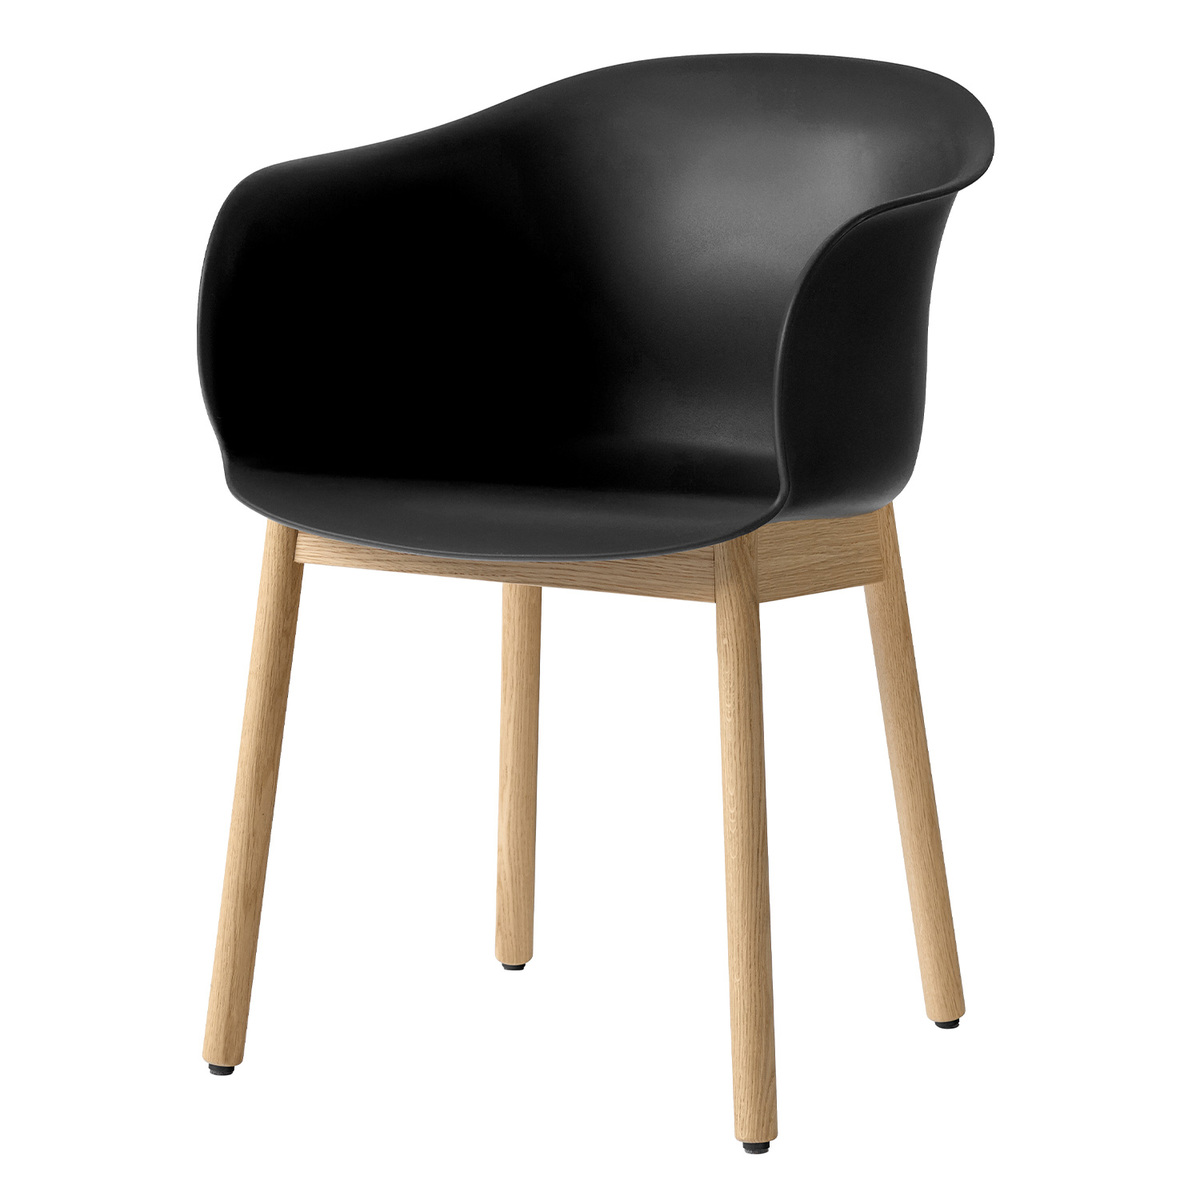 &Tradition Elefy JH30 chair, black - oak from &Tradition